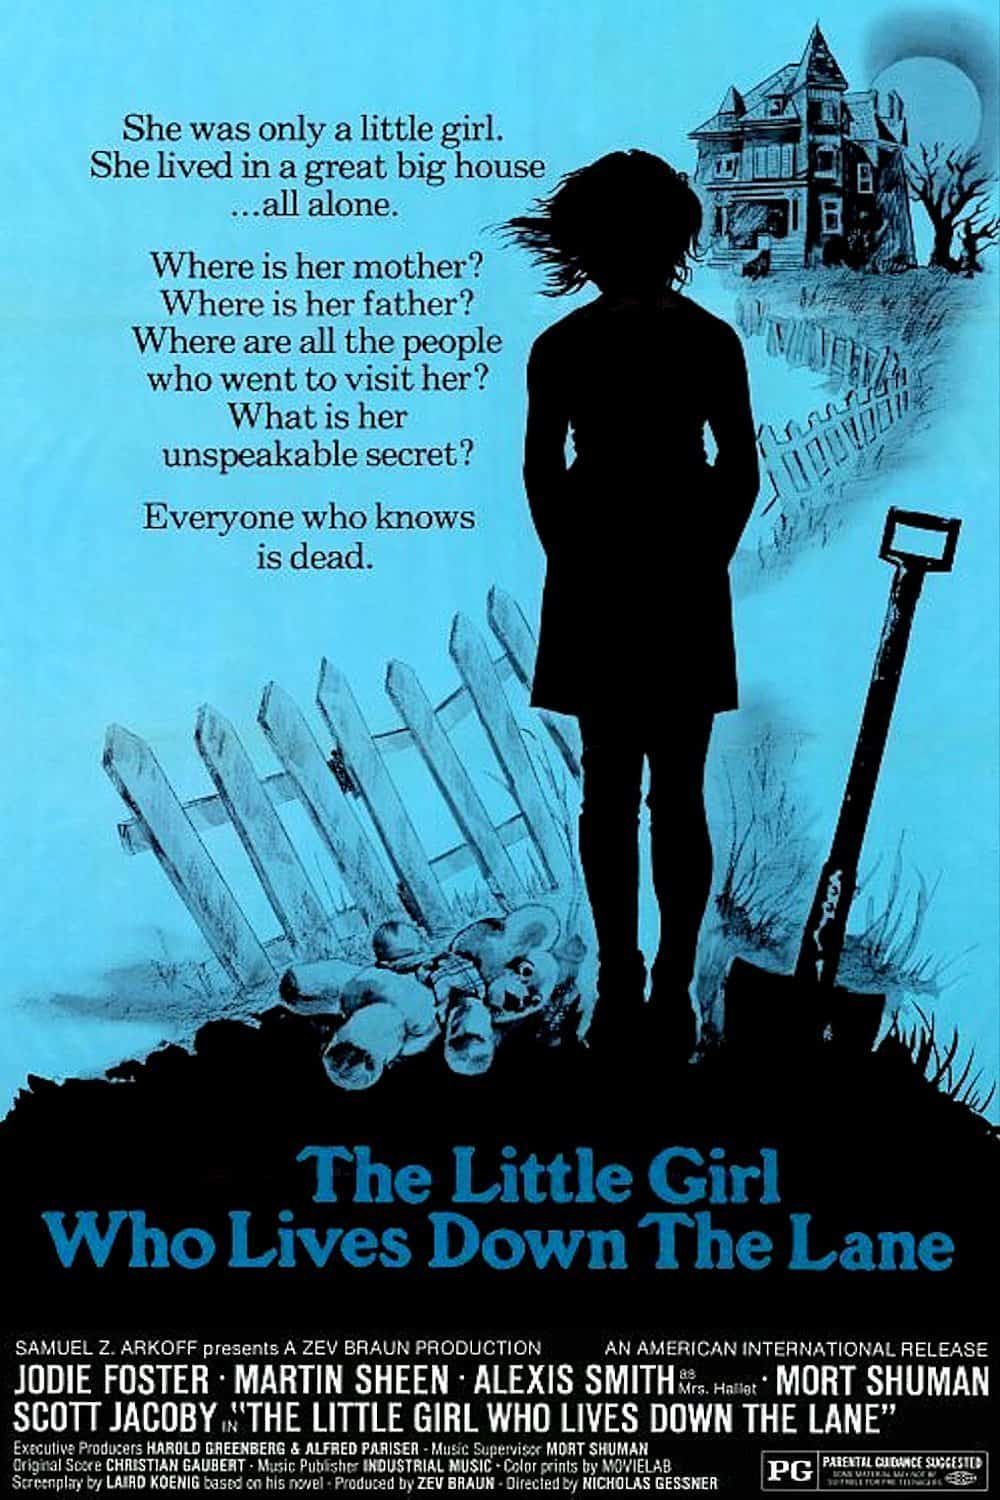 The Little Girl Who Lives Down the Lane, 1976